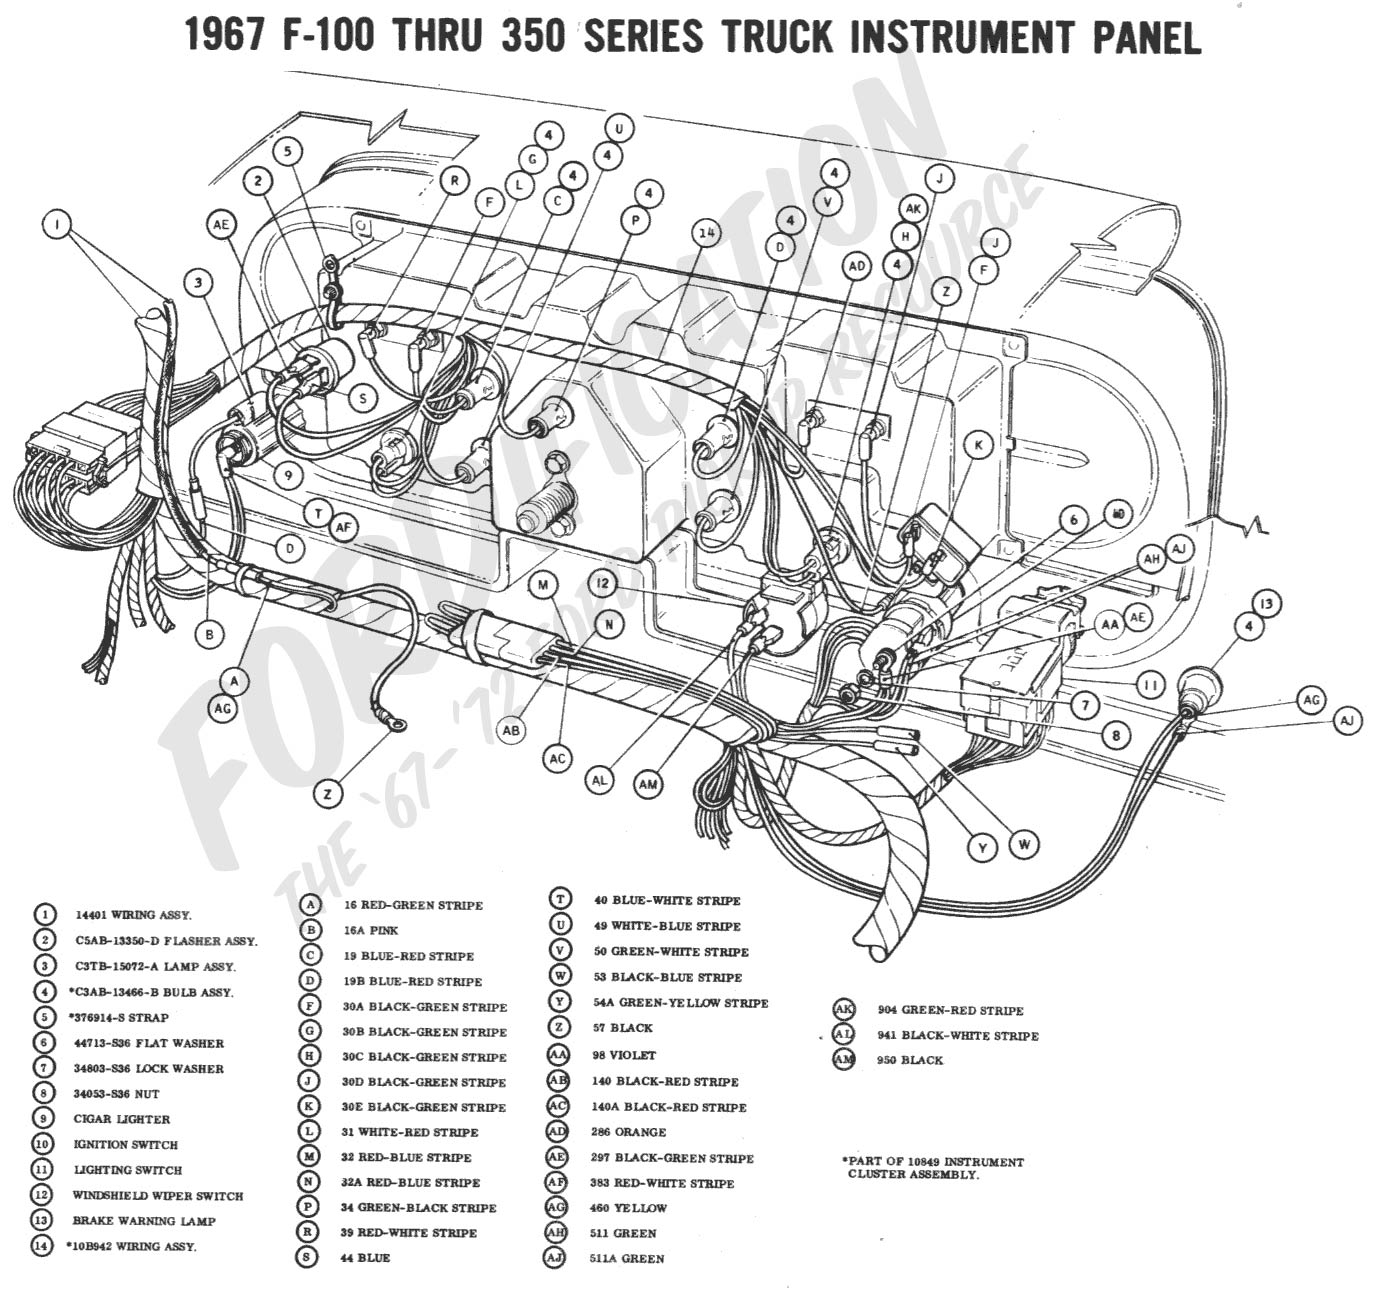 608854 Headlights Relay Wiring Questions in addition Techinfo further Index together with Instrument Panel Wiring Diagram Of 1966 Oldsmobile 52 Through 86 as well 1979 Cj7 Fuel Sending Unit Wiring. on wiring of 1967 ford alternator diagram